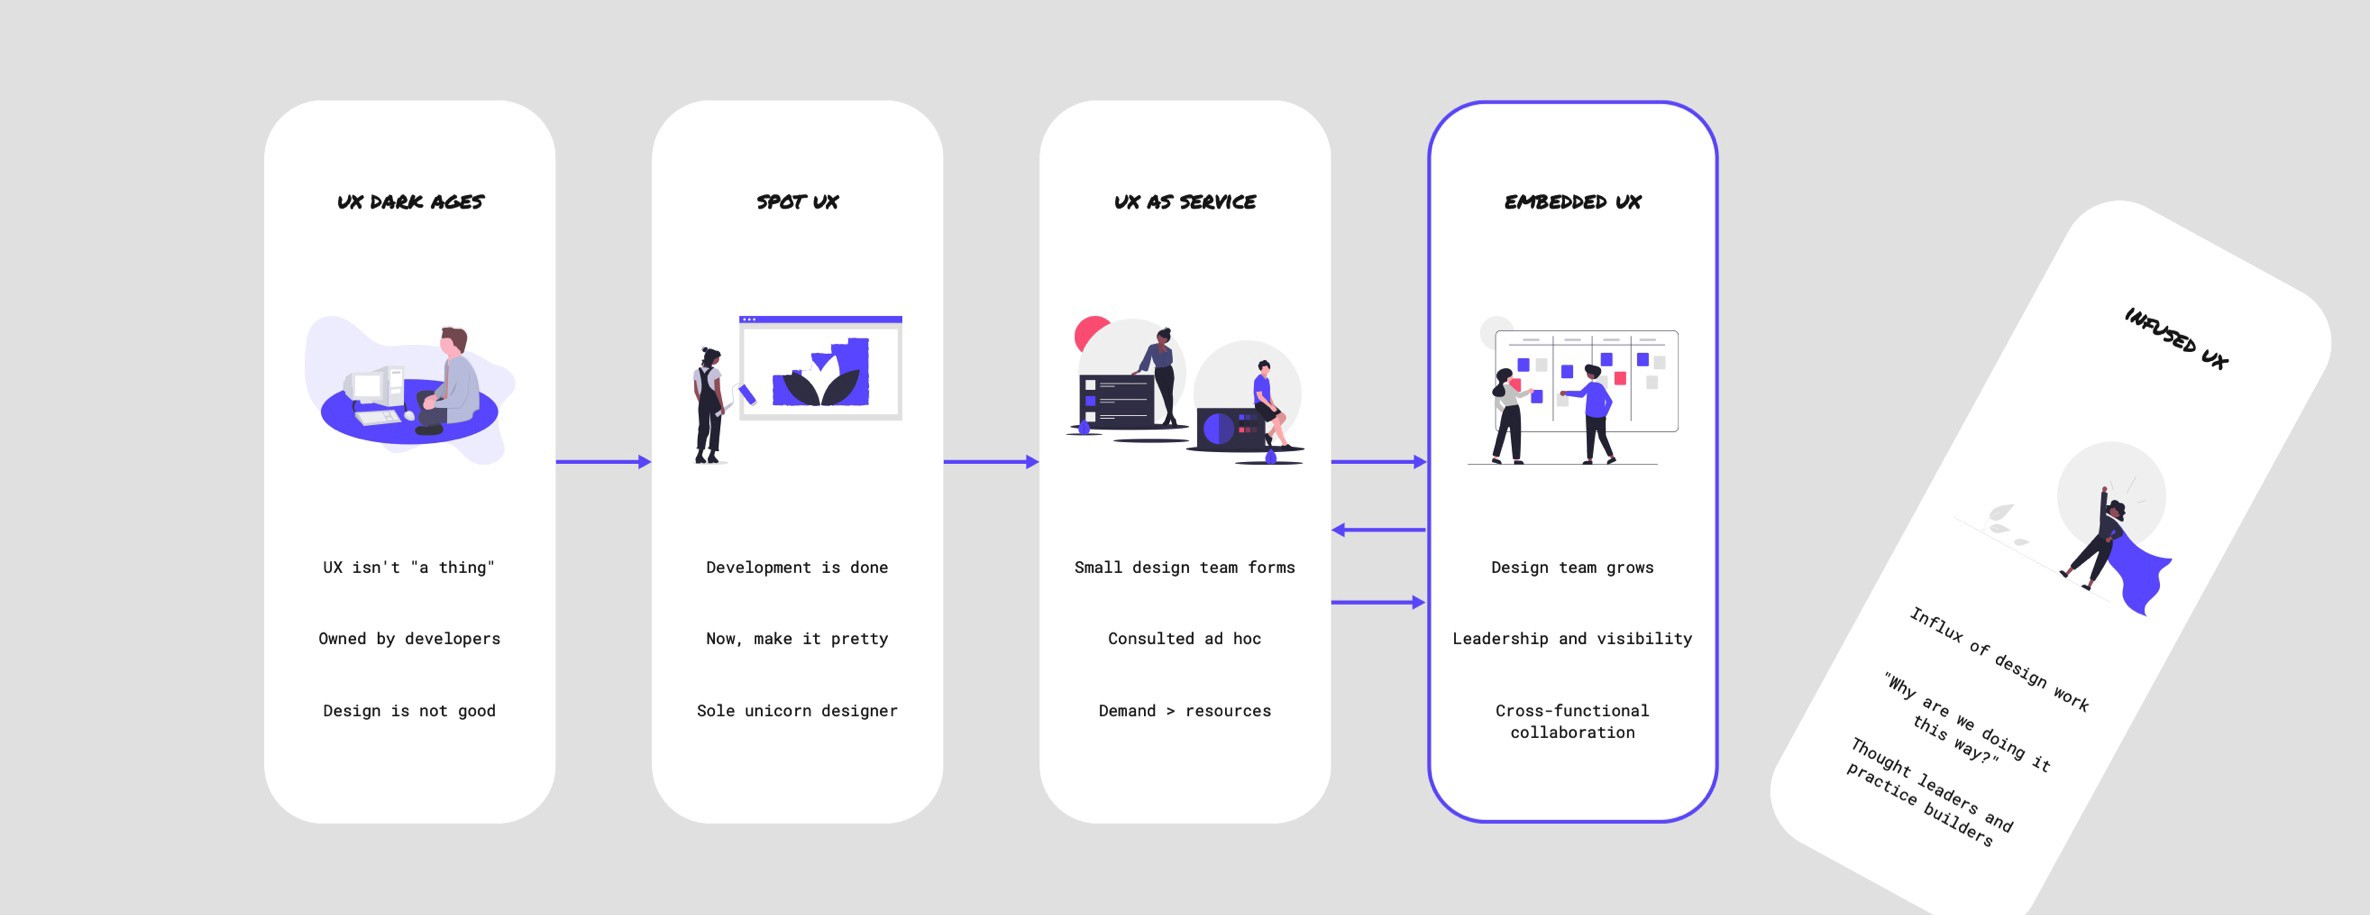 The fall of Infused UX as a goal for the Design team.